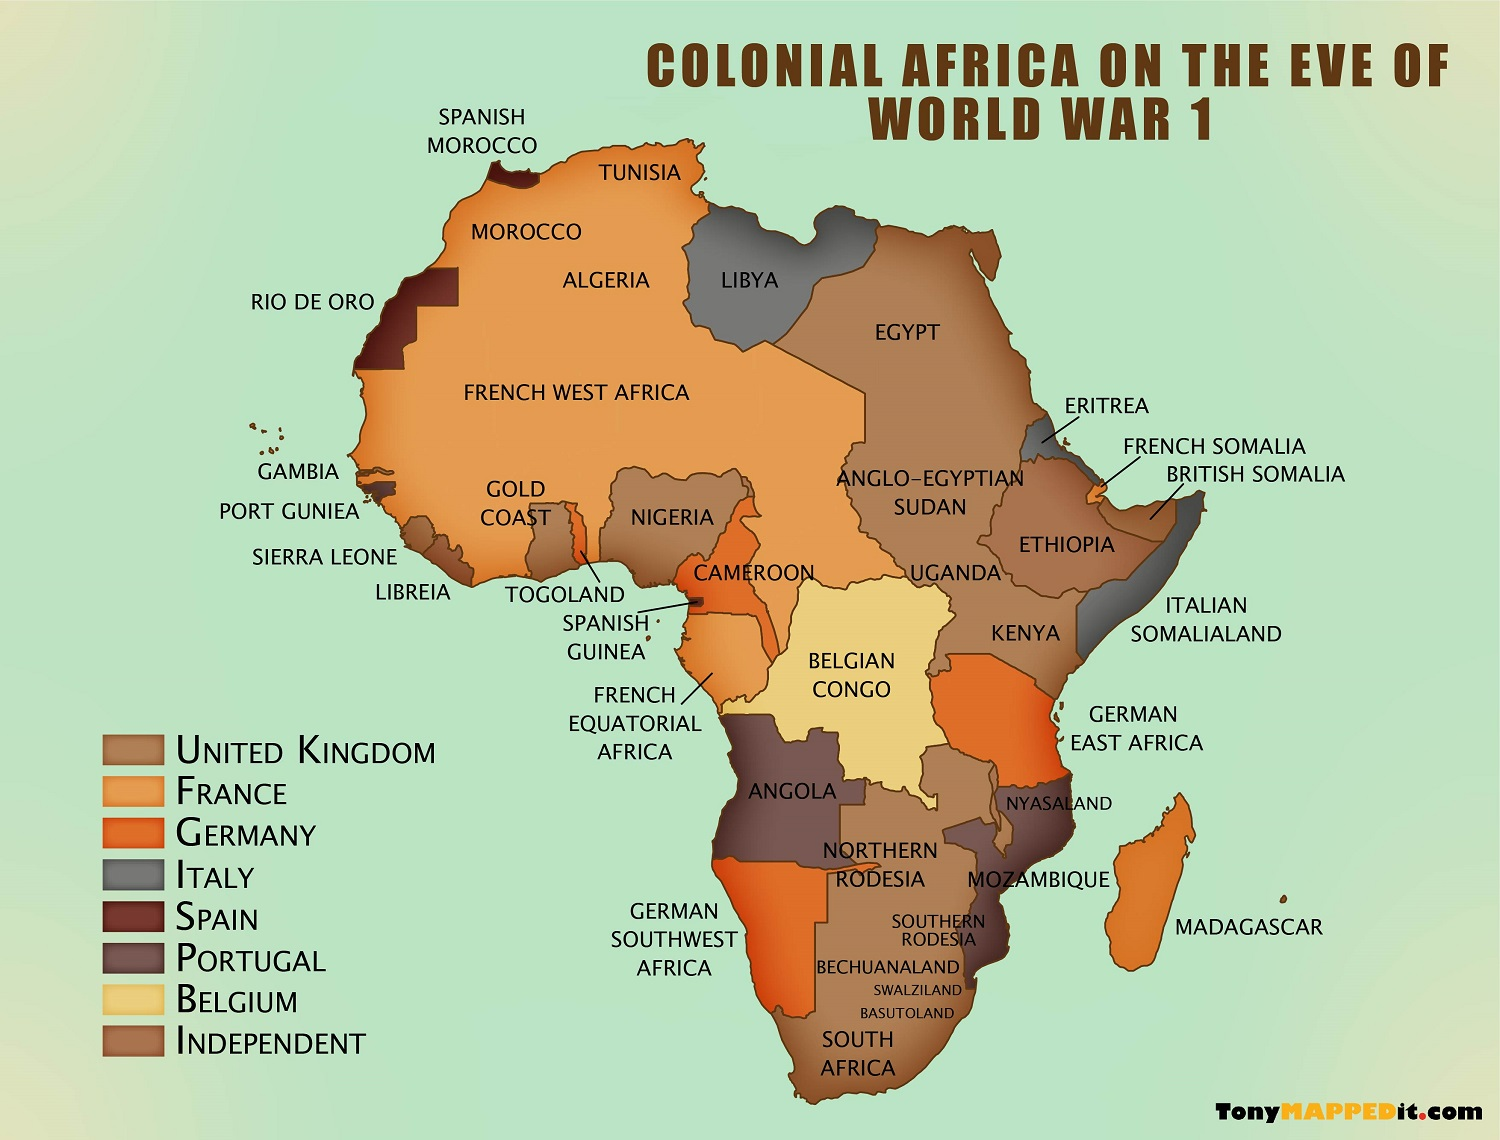 map of africa during colonization Map Of Colonized Africa In 1914 Tony Mapped It map of africa during colonization